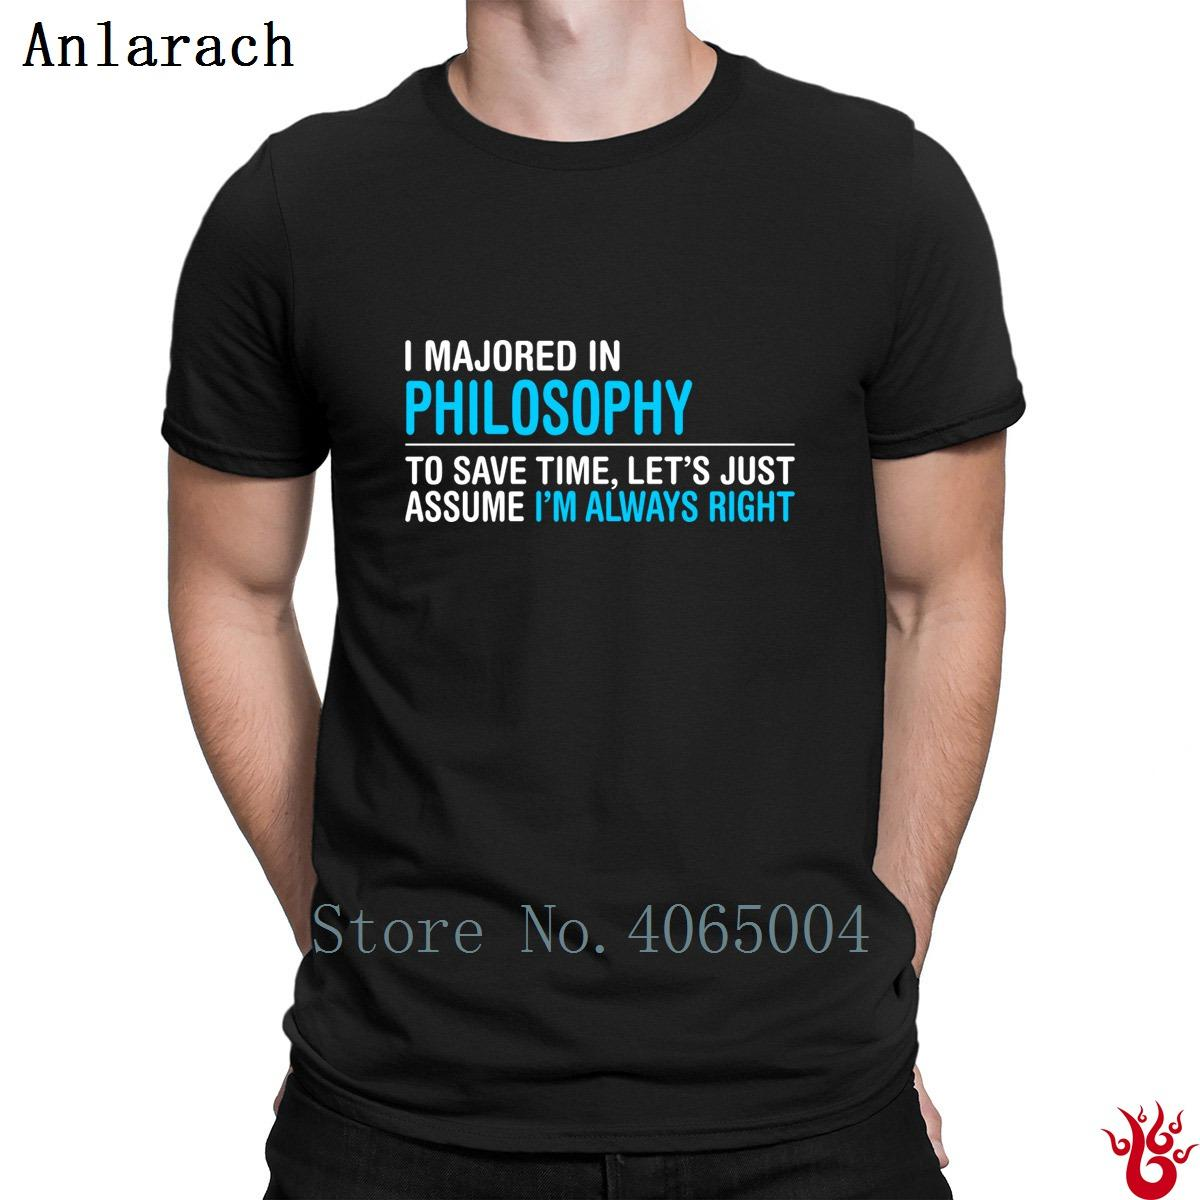 a5e8c37e I Majored In Philosophy Tshirts Trend Round Collar Hiphop Men's T Shirt  2018 Short Sleeve Outfit Anti-Wrinkle Comfortable